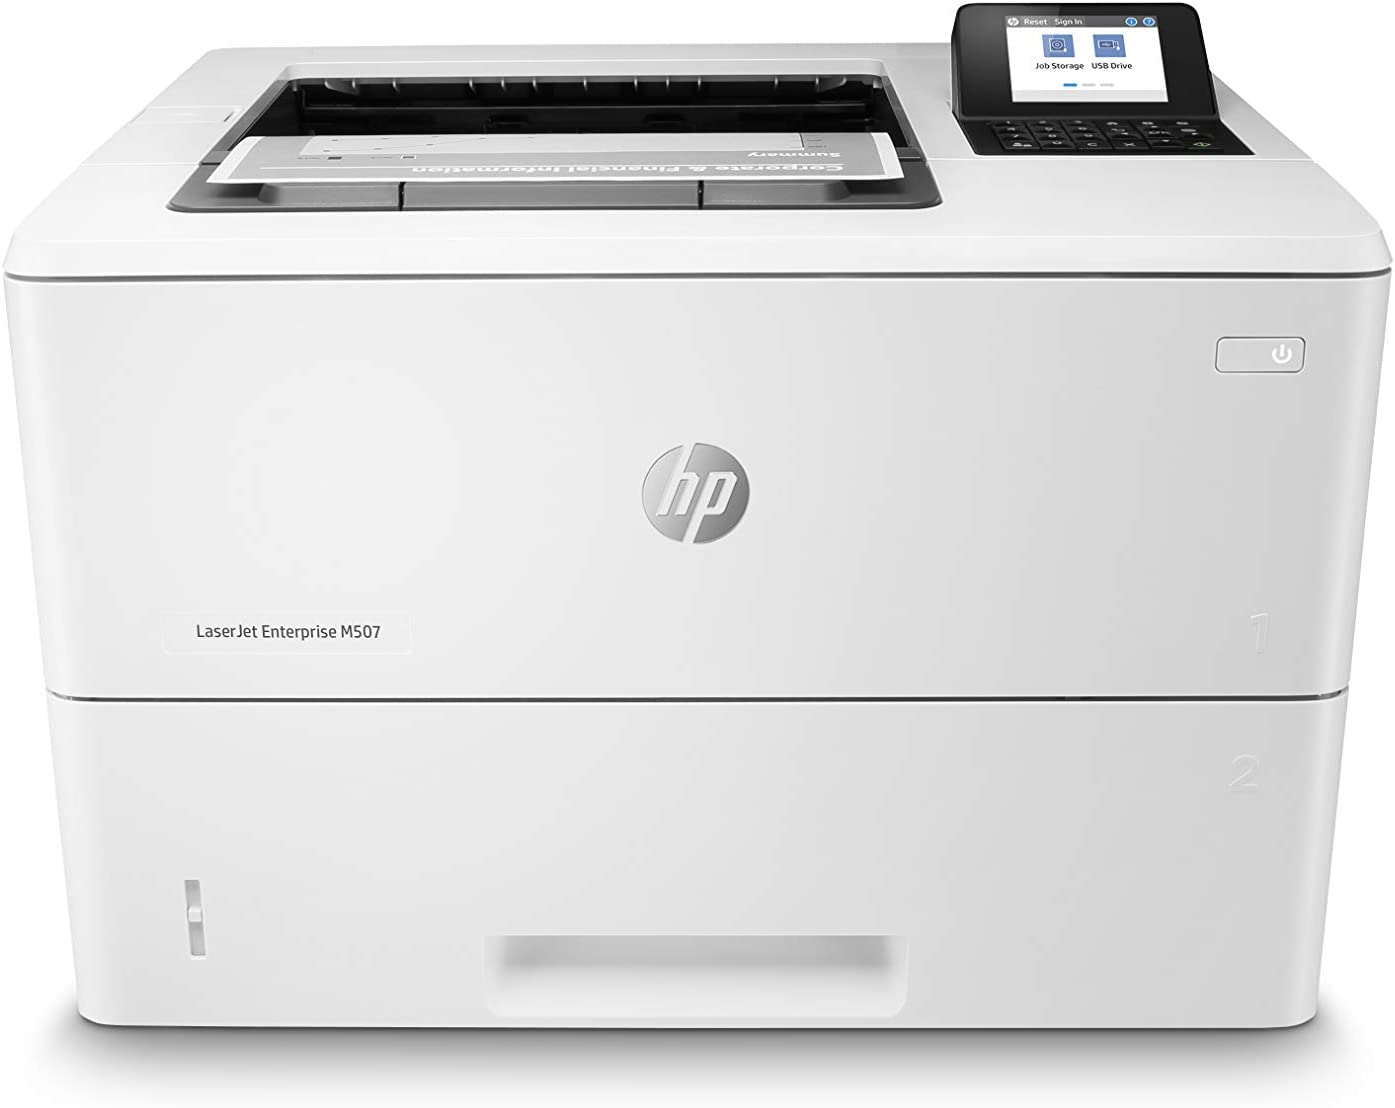 HP Laserjet Enterprise Printer M507n Works with Alexa (1PV86A), White, One Size